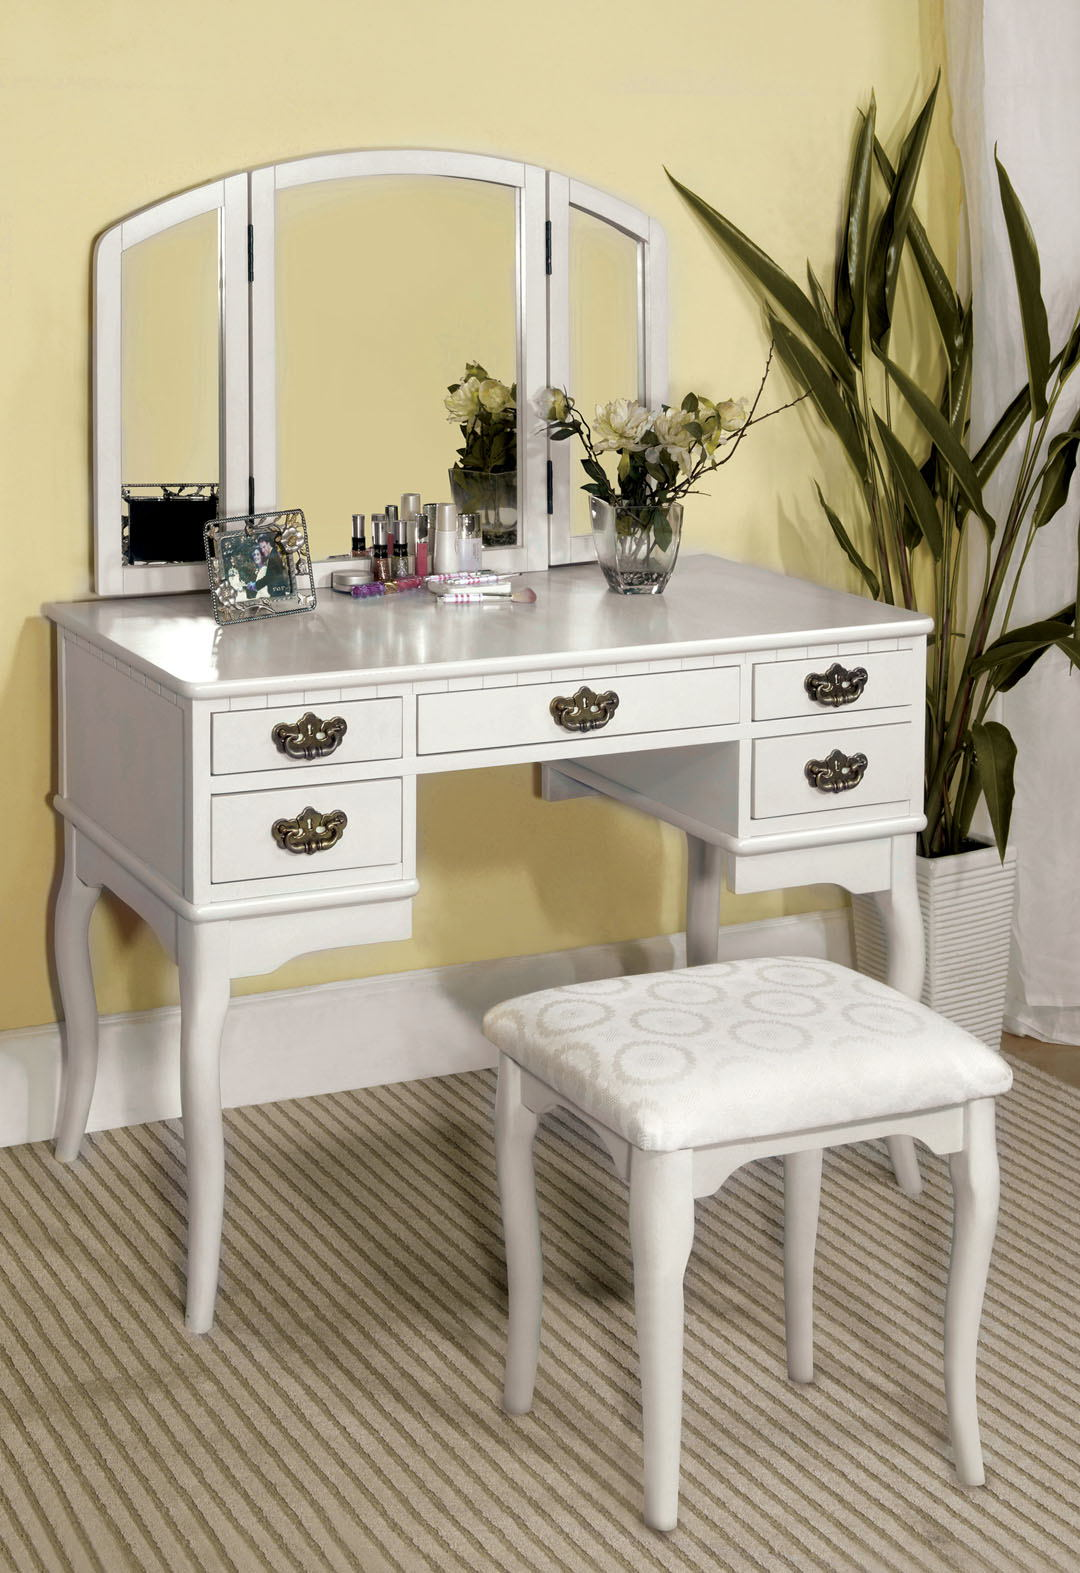 3 pc ashland chippendale style white finish wood bedroom make up vanity sitting table set with tri fold mirror